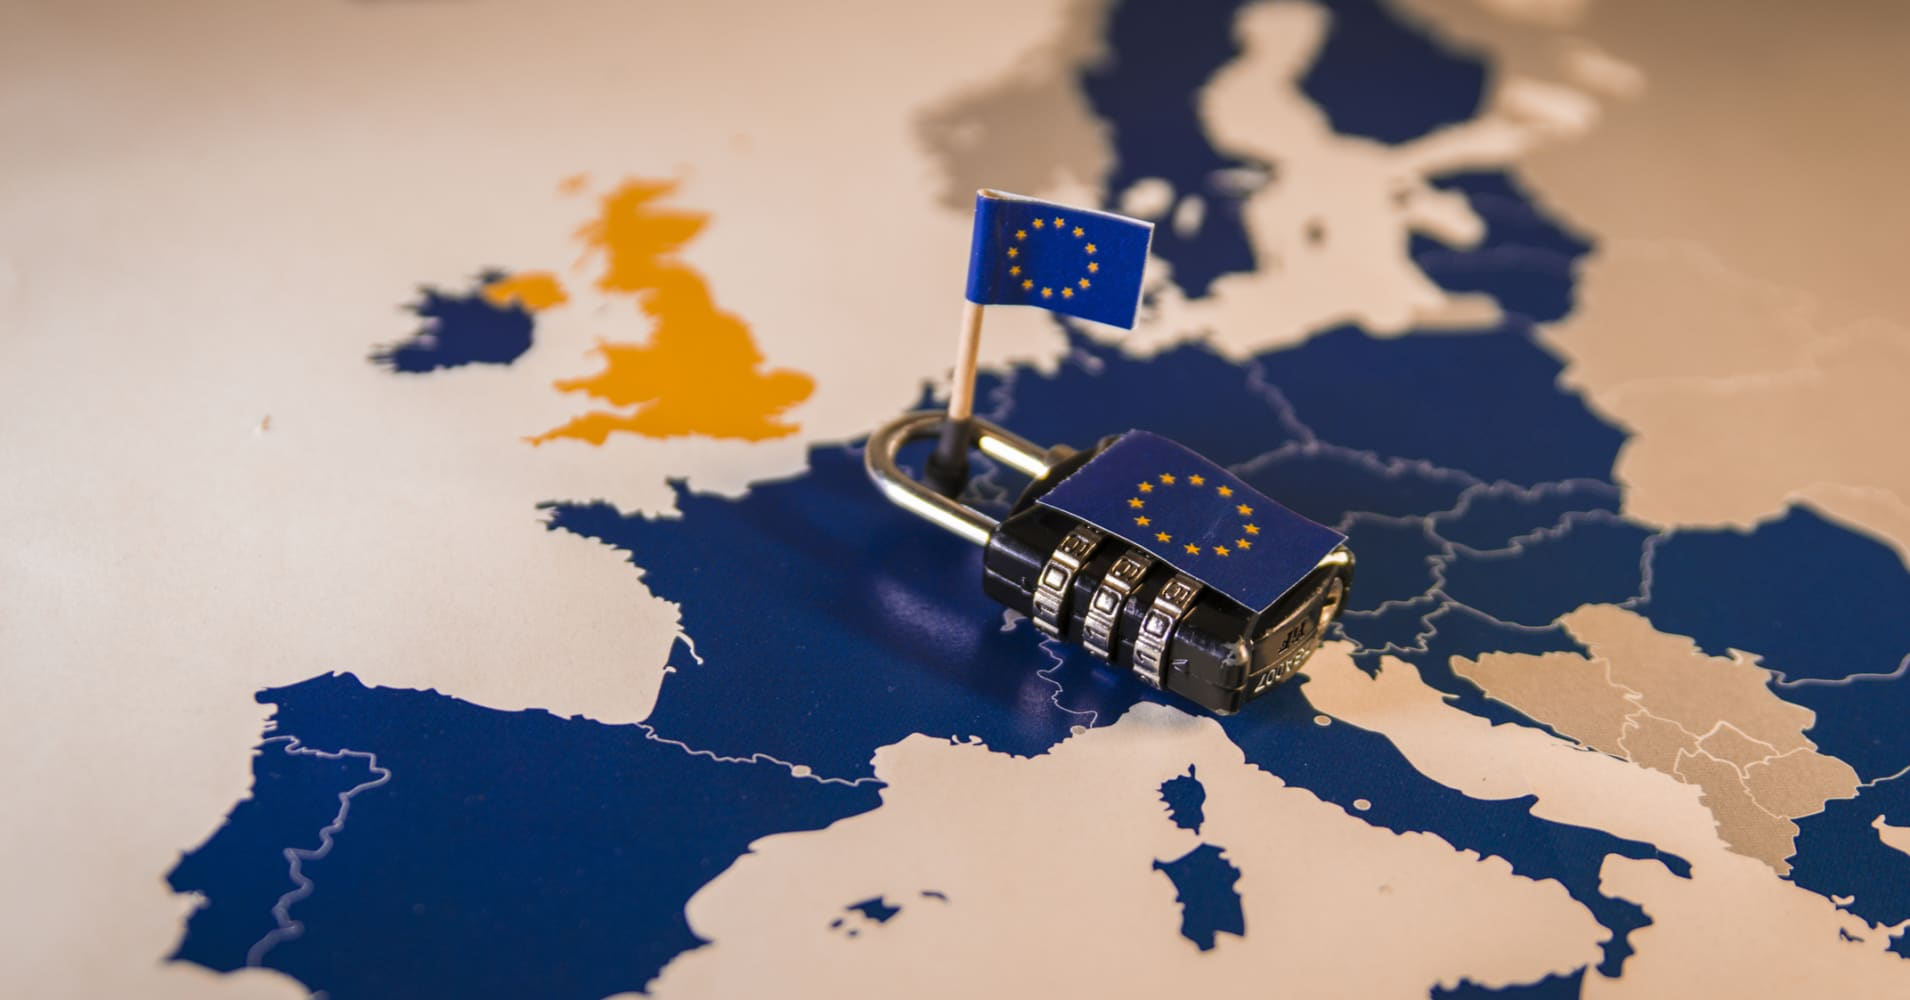 GDPR: How Europe's new privacy law is creating big business opportunities